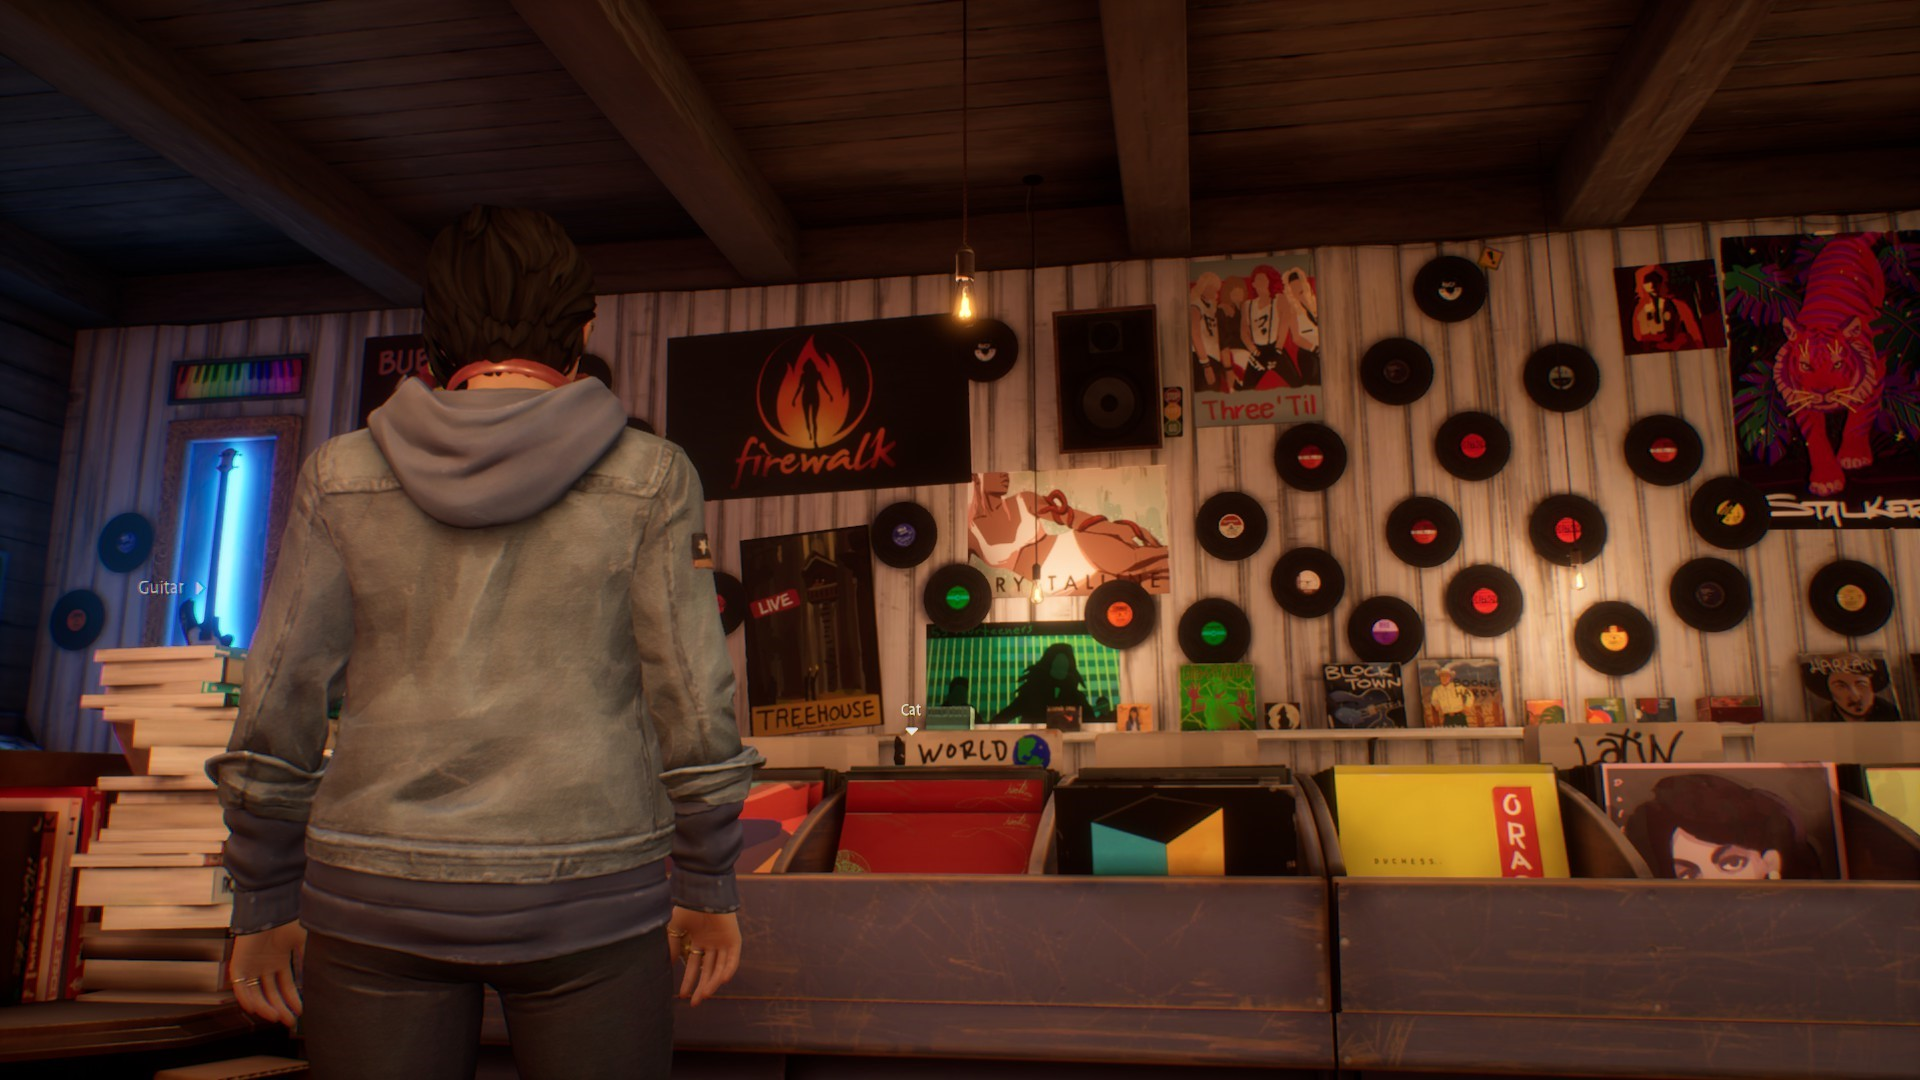 Life is Strange: True Colors - Guide to Easter Eggs in Game & Secrets - Firewalk band posters - CA25256